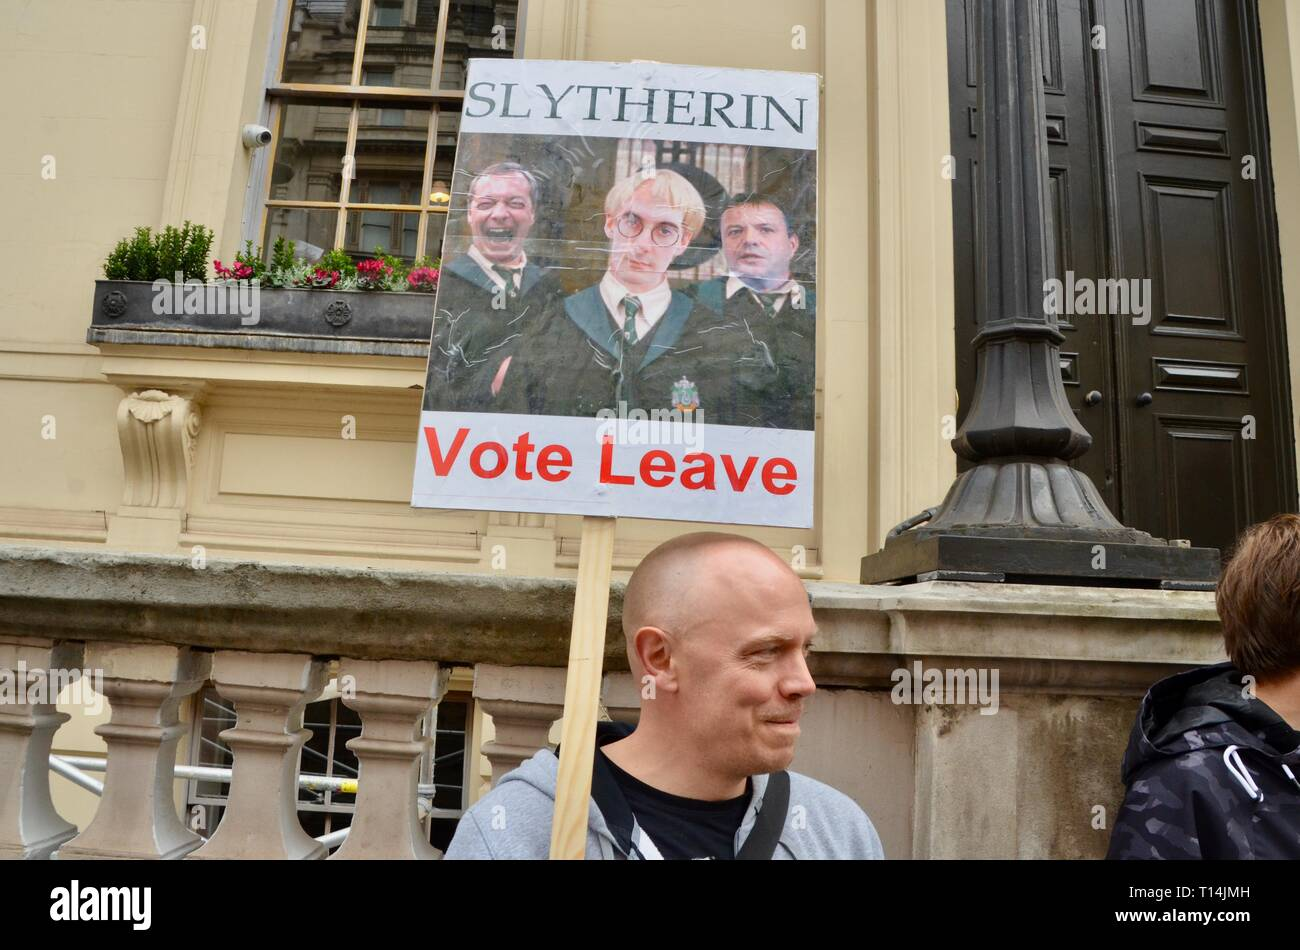 scenes from the anti brexit pro peoples vote march in london 23rd march 2019 man with harry potter based slytherin vote leave placard - Stock Image